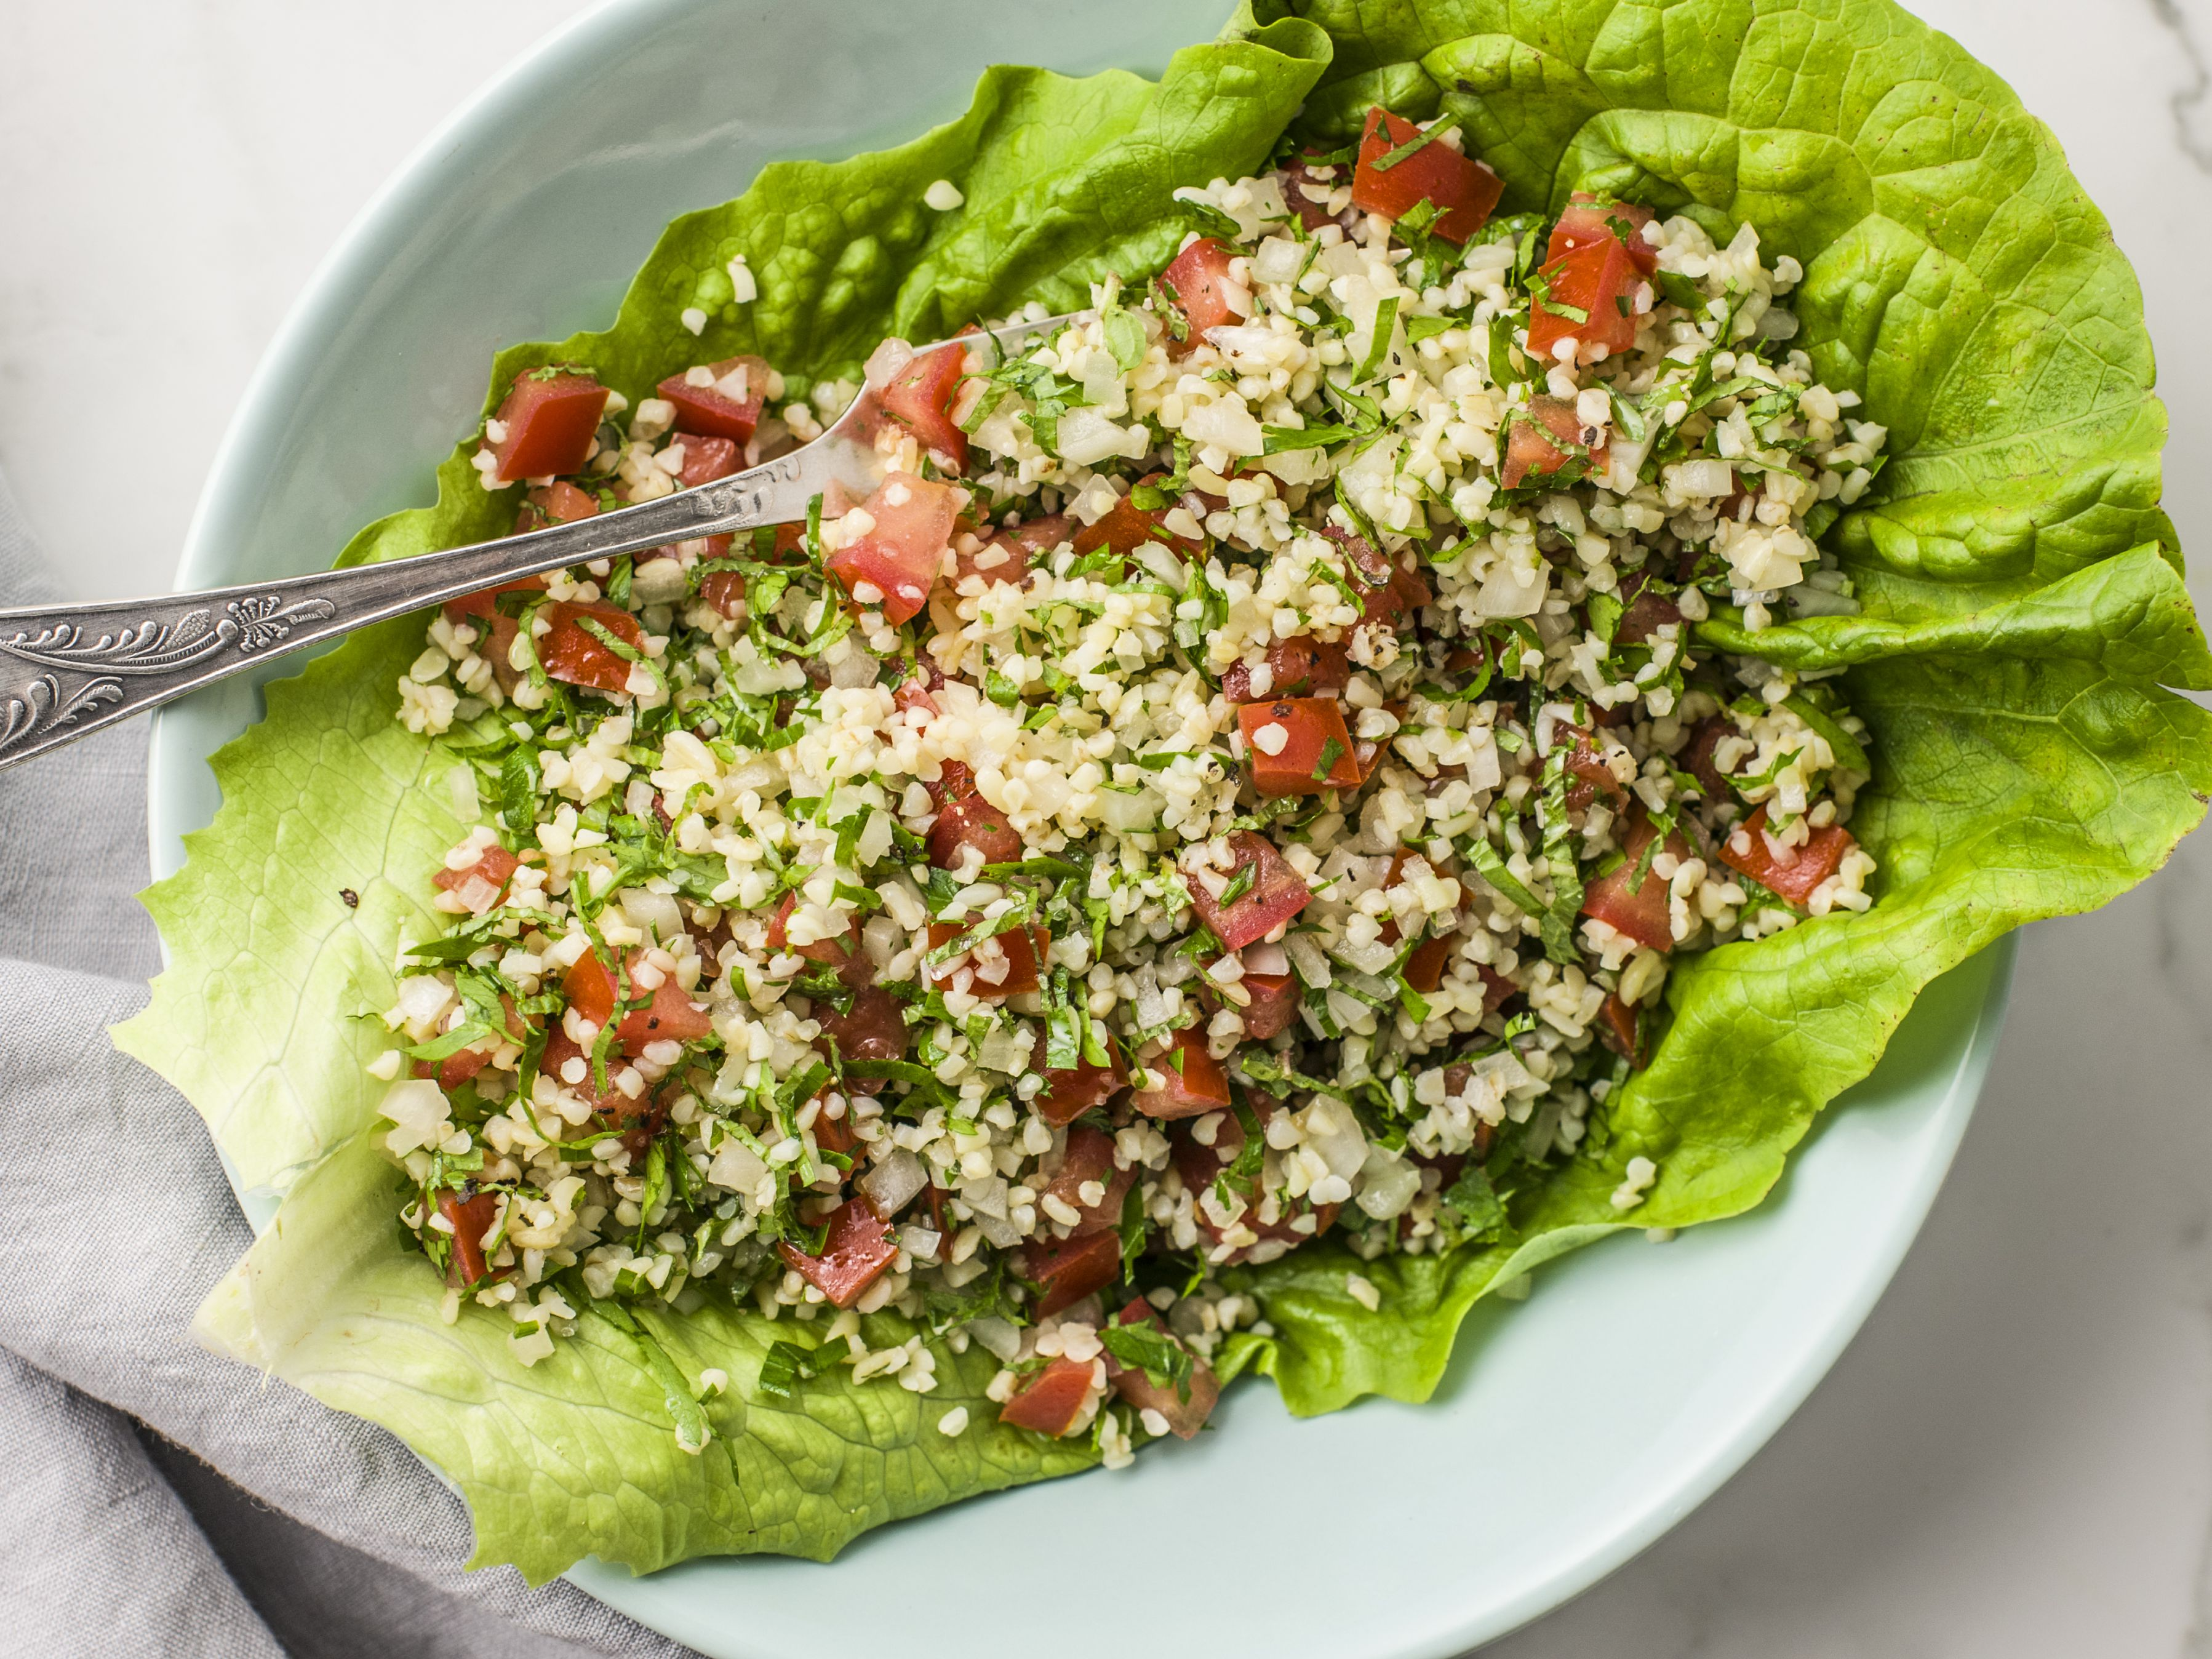 Recipe for How to Make Tabouleh (Wheat and Herb Salad)